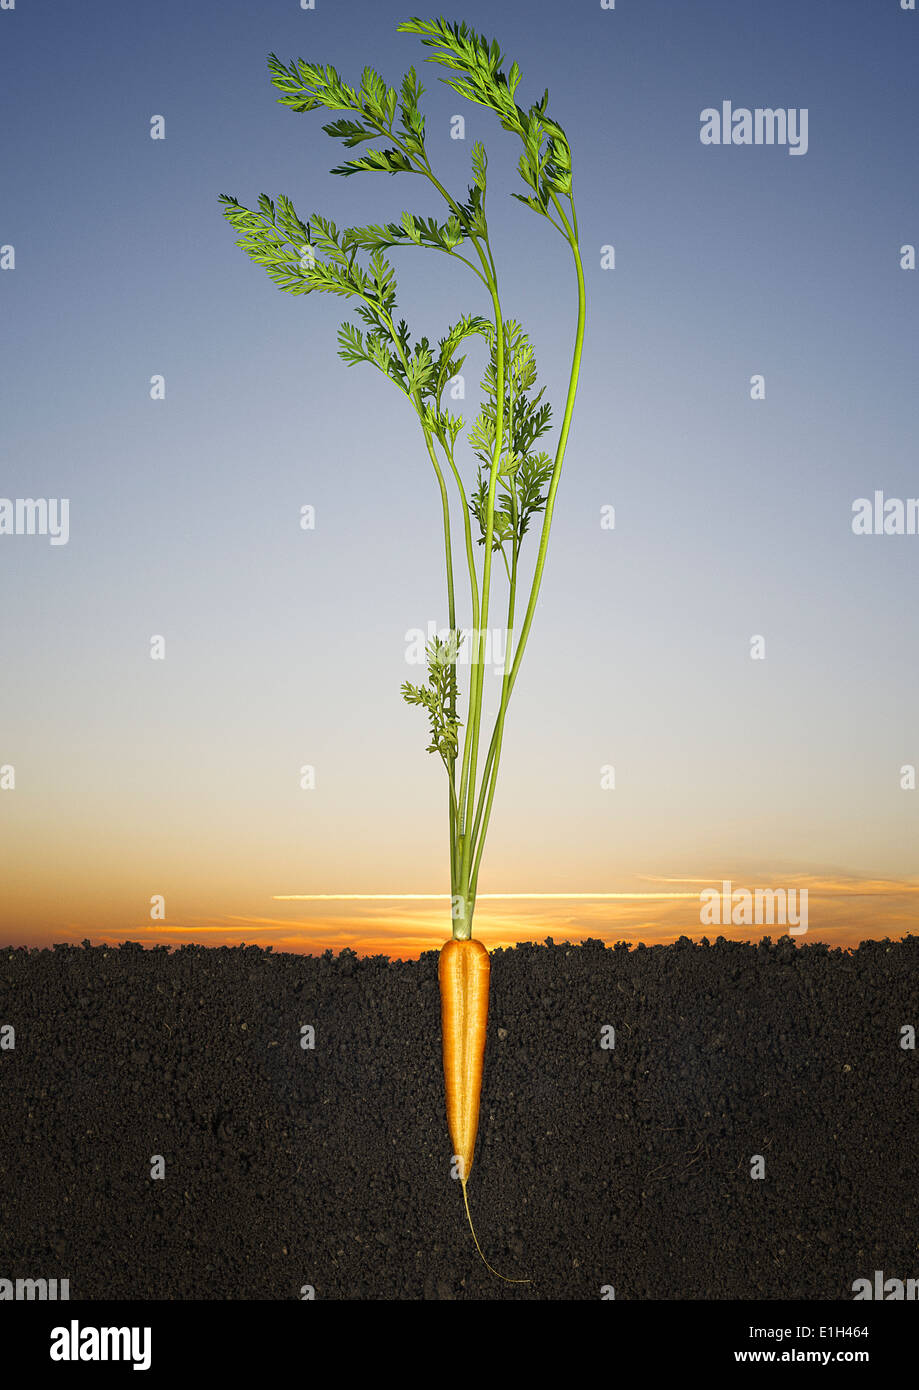 Halved carrot growing in soil - Stock Image